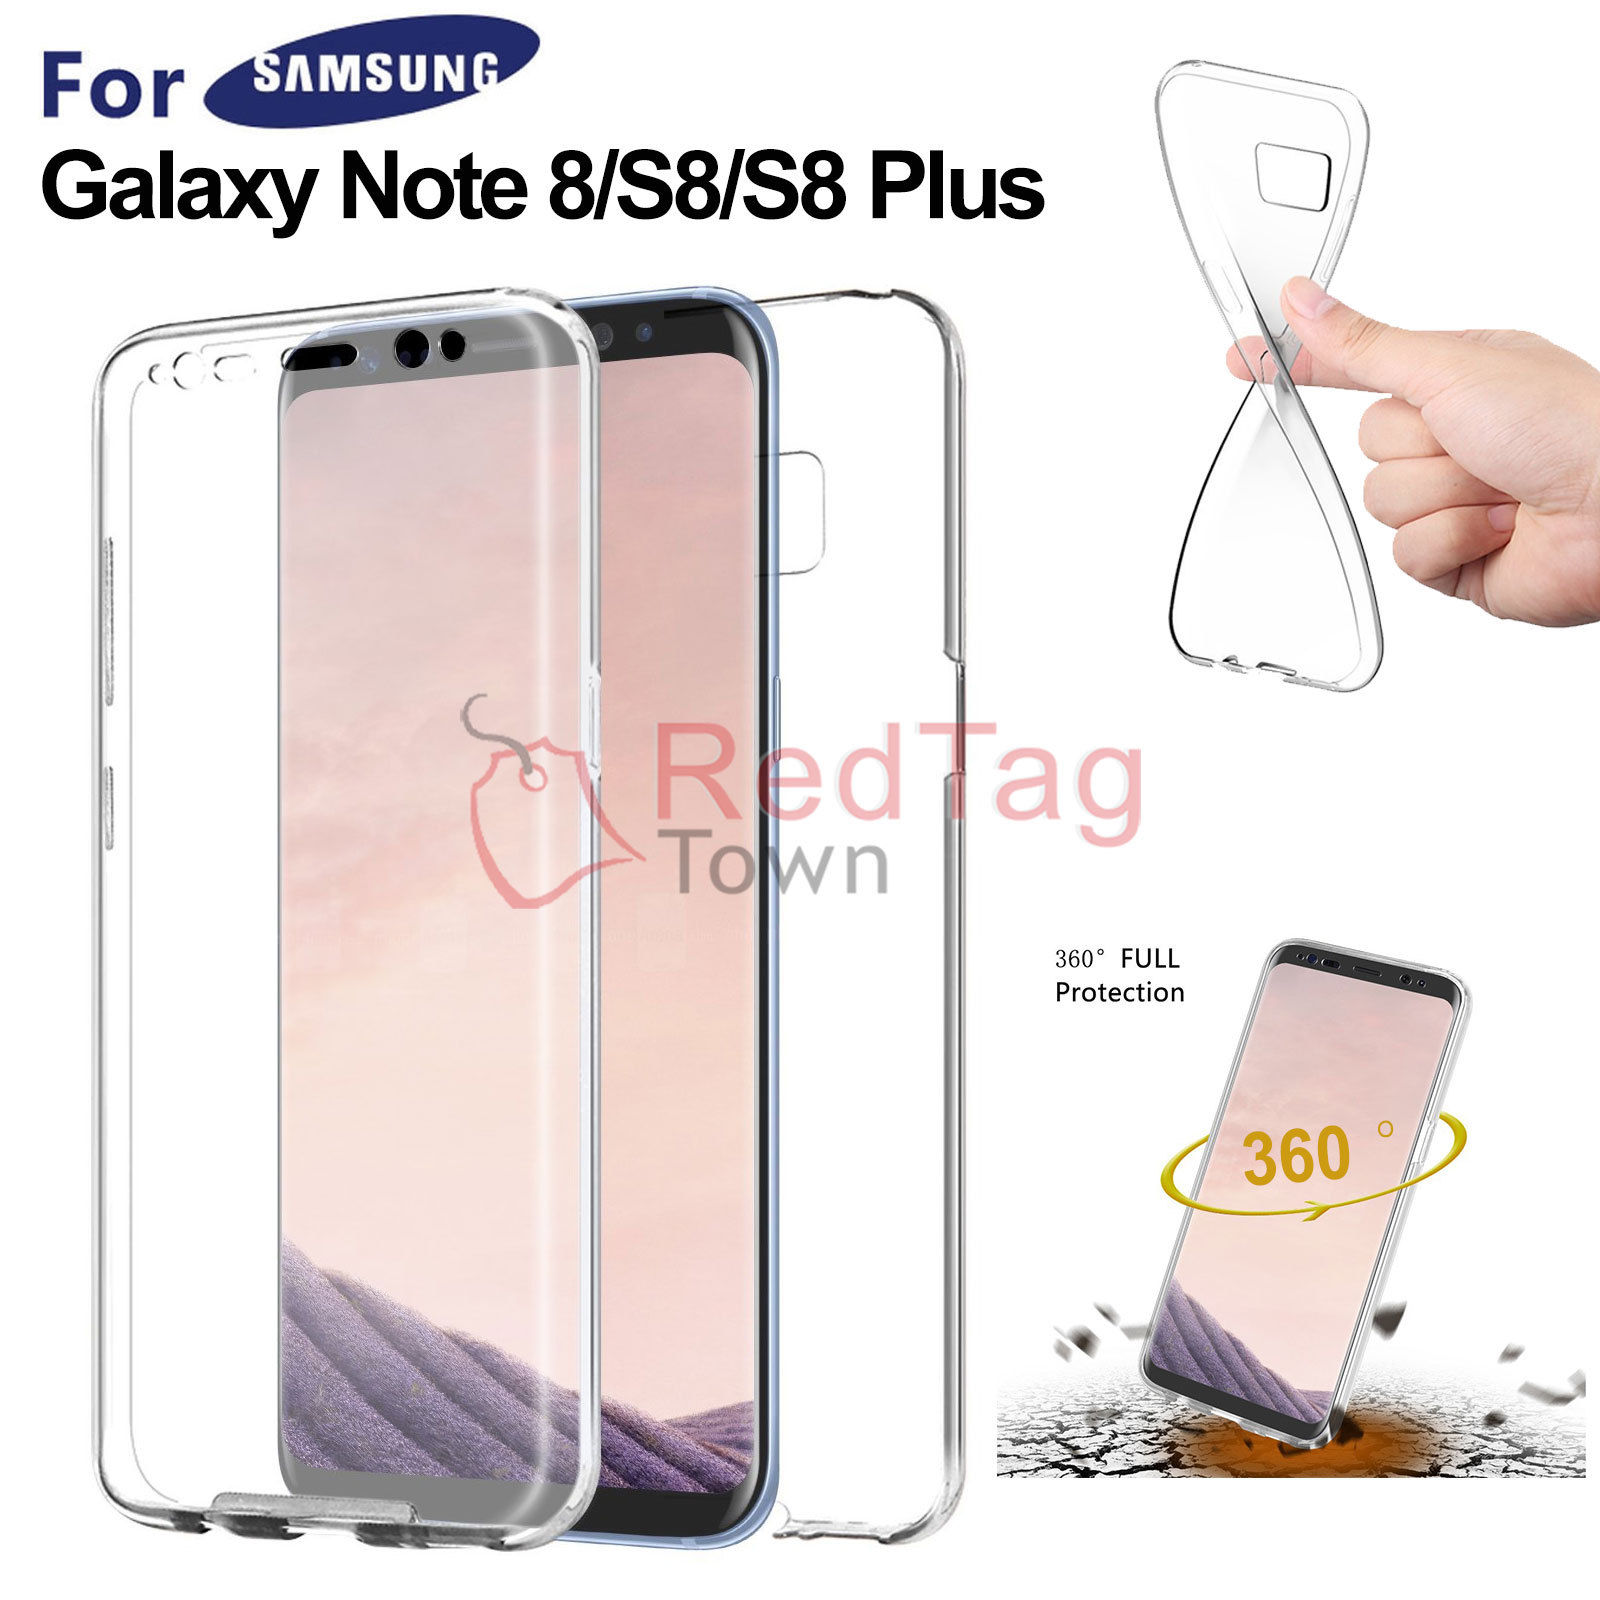 new product ba562 d9817 Details about Crystal Clear Full Body Protective Case Cover For Samsung  Galaxy S8 Plus Note 8